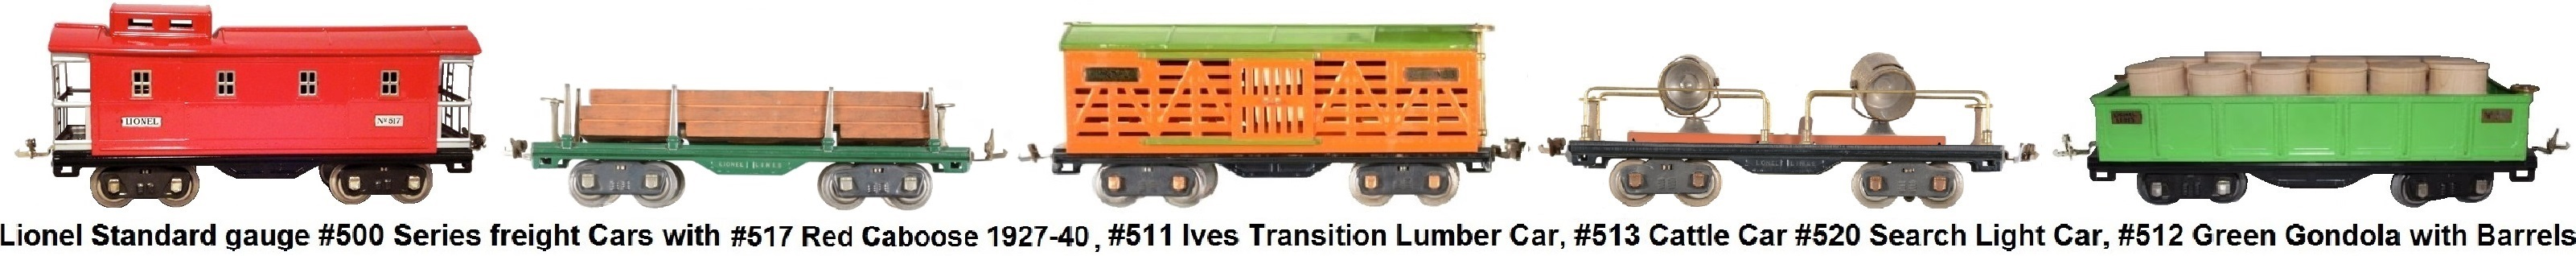 Lionel #500 series Standard gauge freights includes #517 Caboose, #511 Lumber car, #513 Cattle car, #520 Searchlight car, #512 gondola with barrels